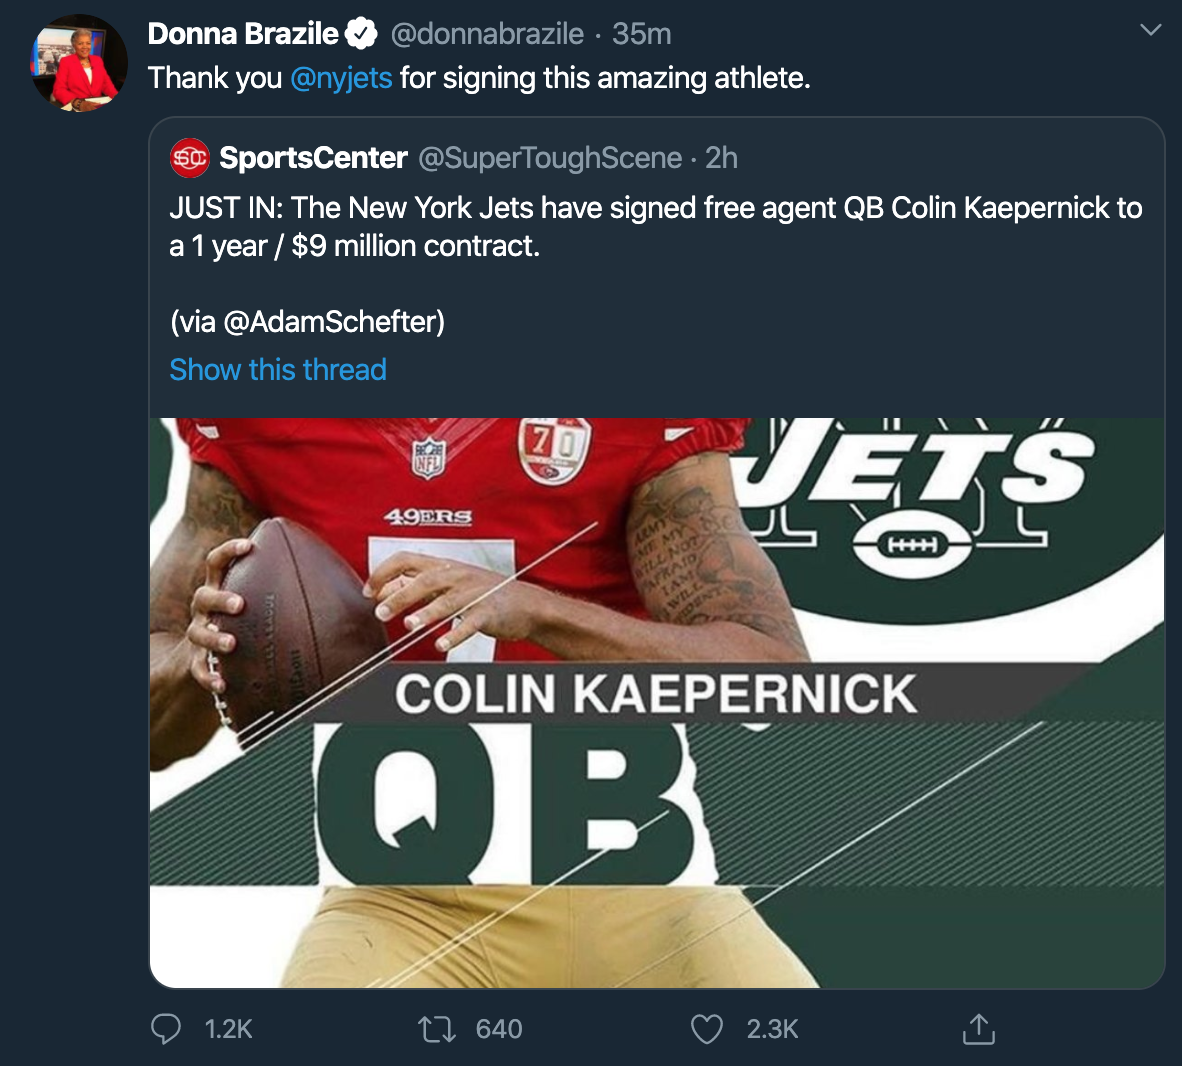 Donna Brazile tweet about the fake Colin Kaepernick story.